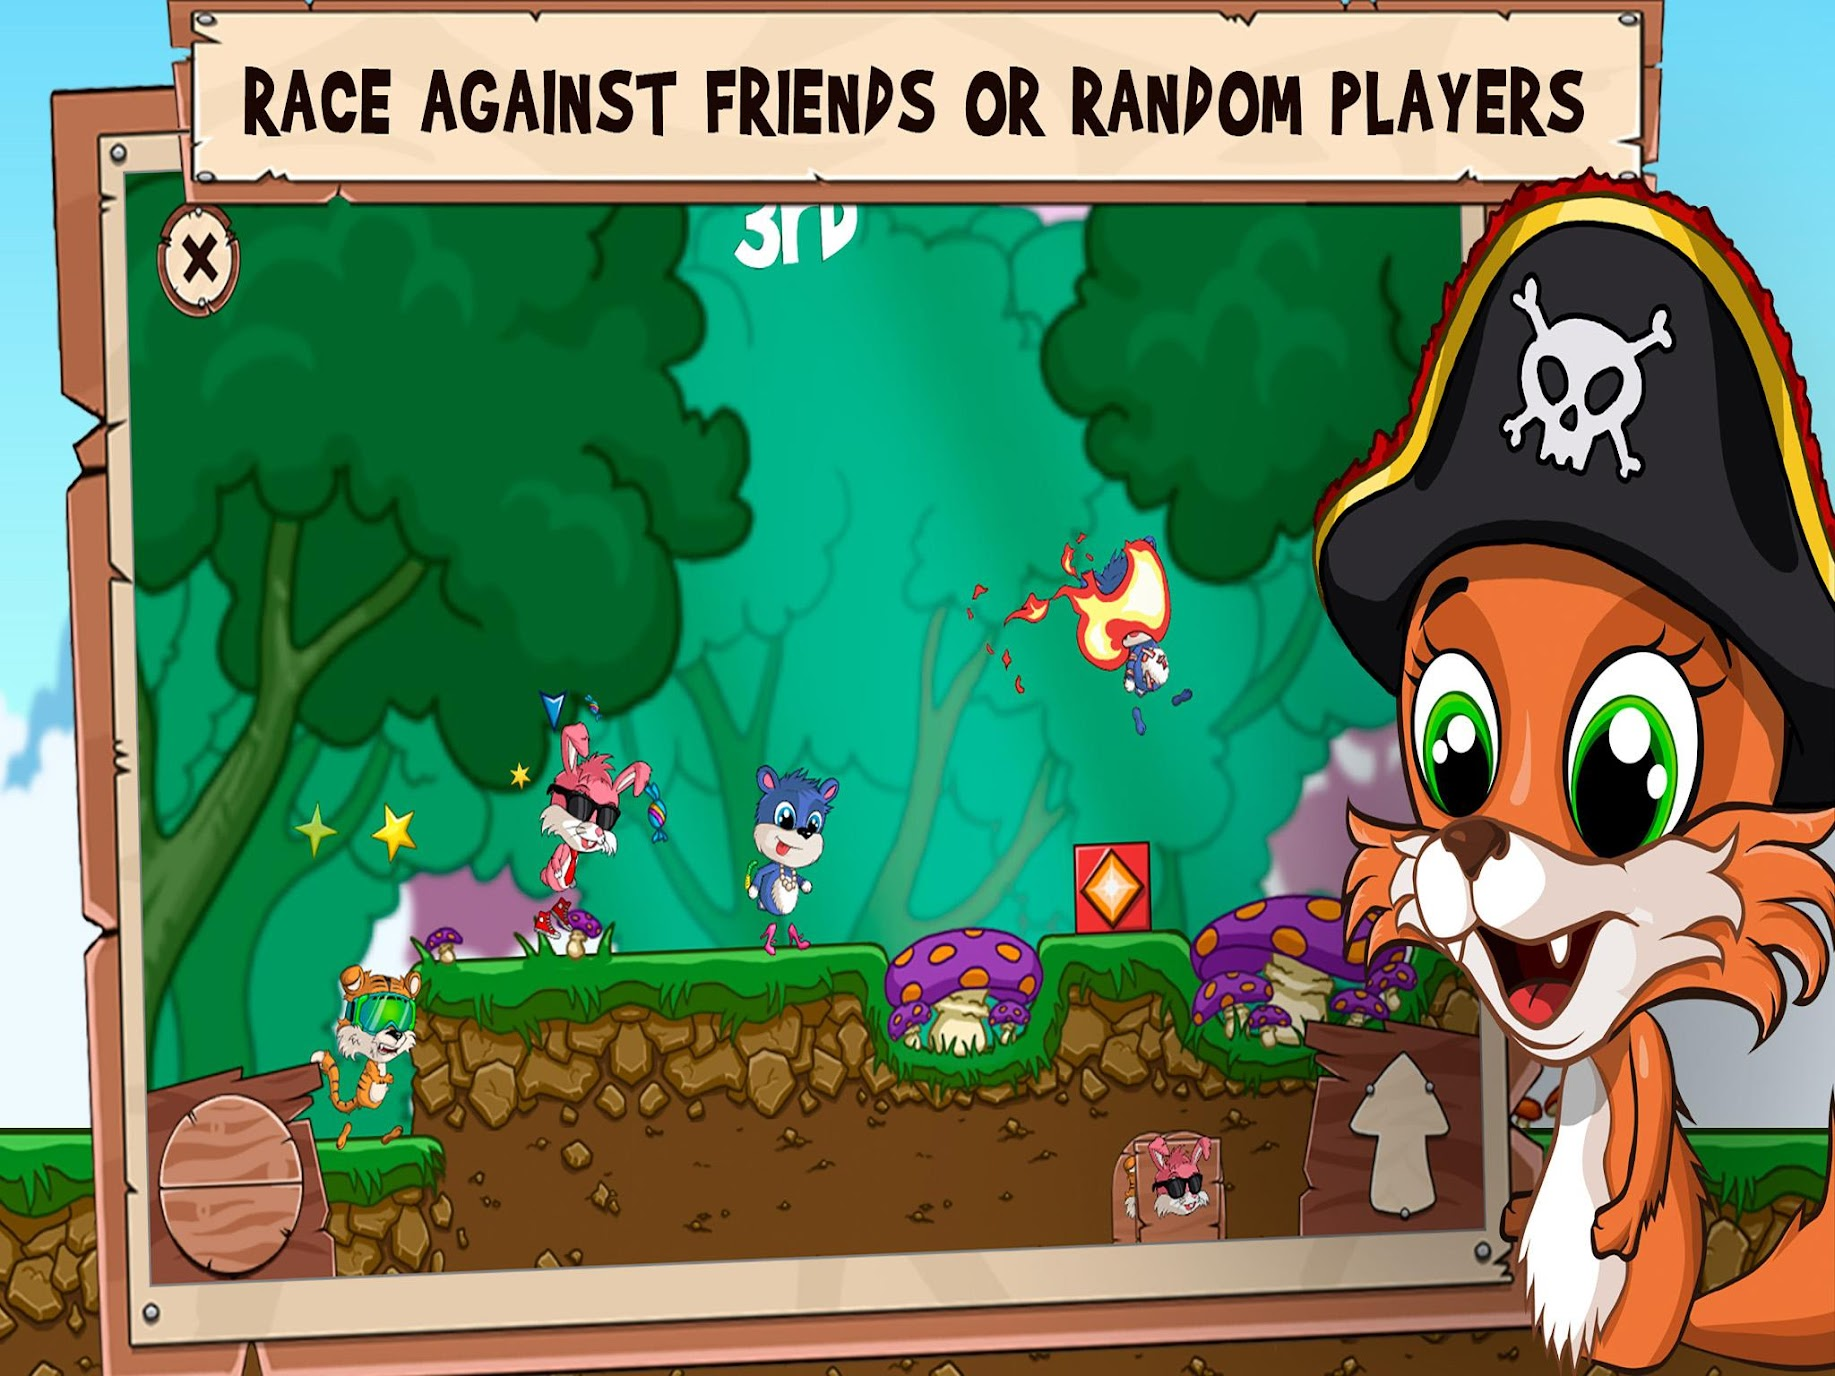 Fun Run 2 Mod APK (Unlimited Money/Mod) For Android 9